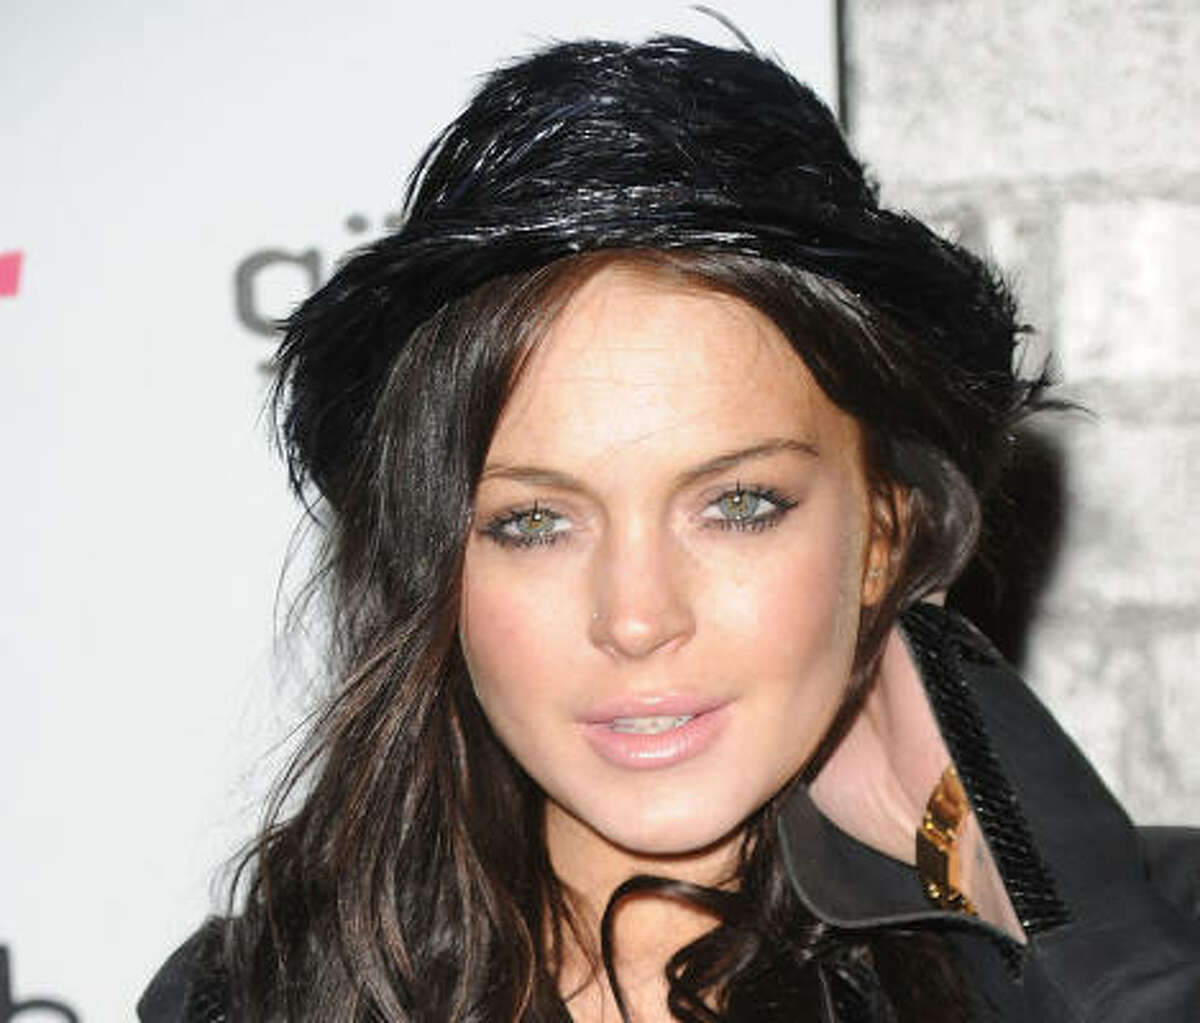 Lindsay Lohan sure gets a lot of publicity, but it's not usually good. Between her turbulent family life and non-existent career, it's amazing she still has time to party. But that's about all she's known for these days. So what do you think? Hot or not? Vote here.